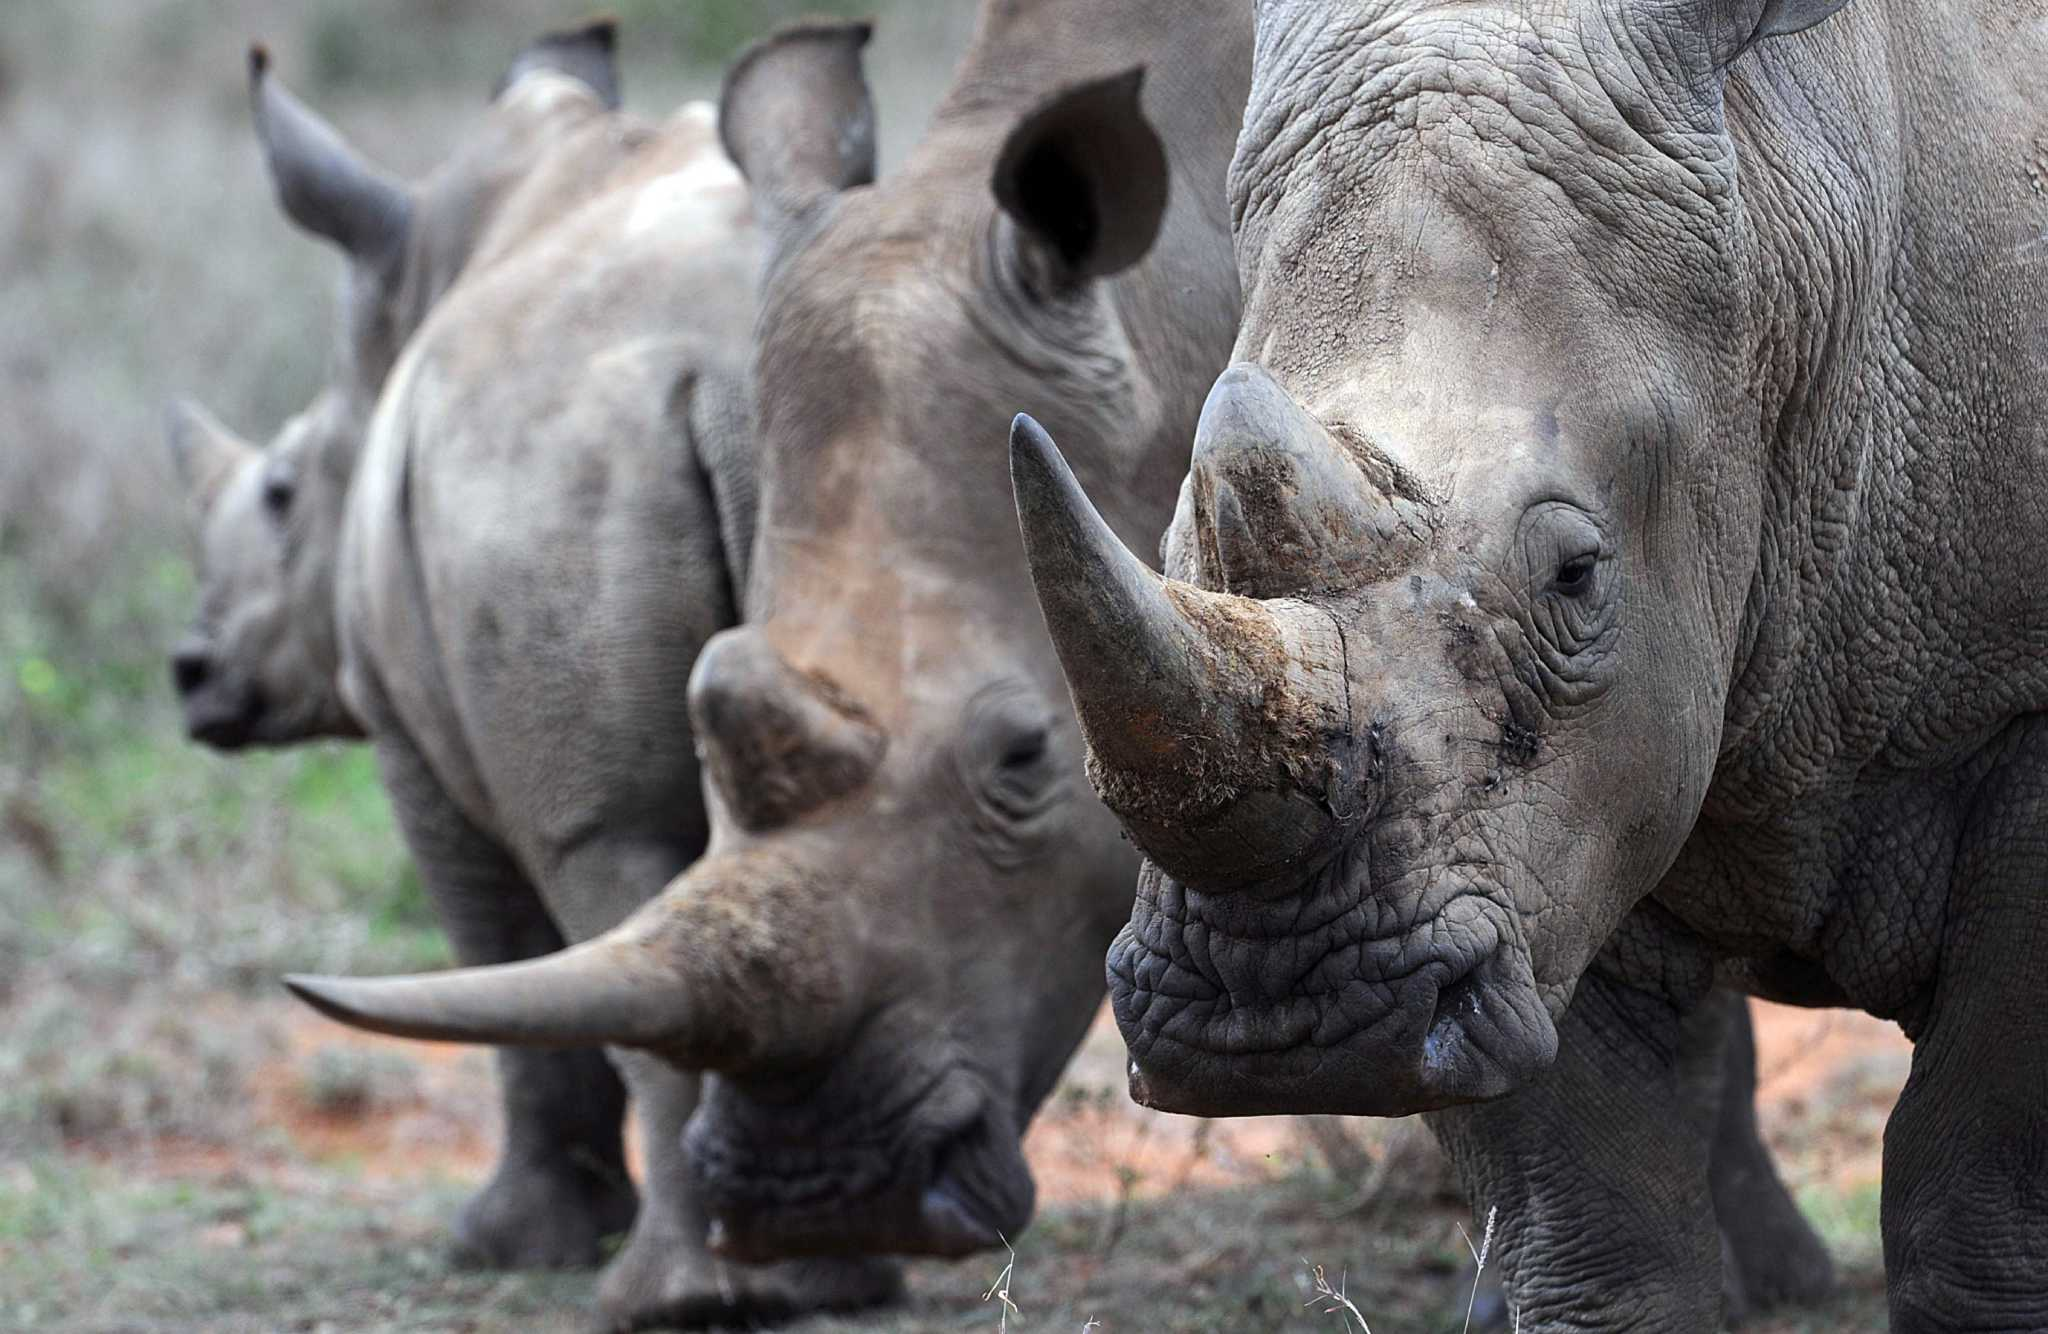 Missing trophies from safari prompt lawsuit